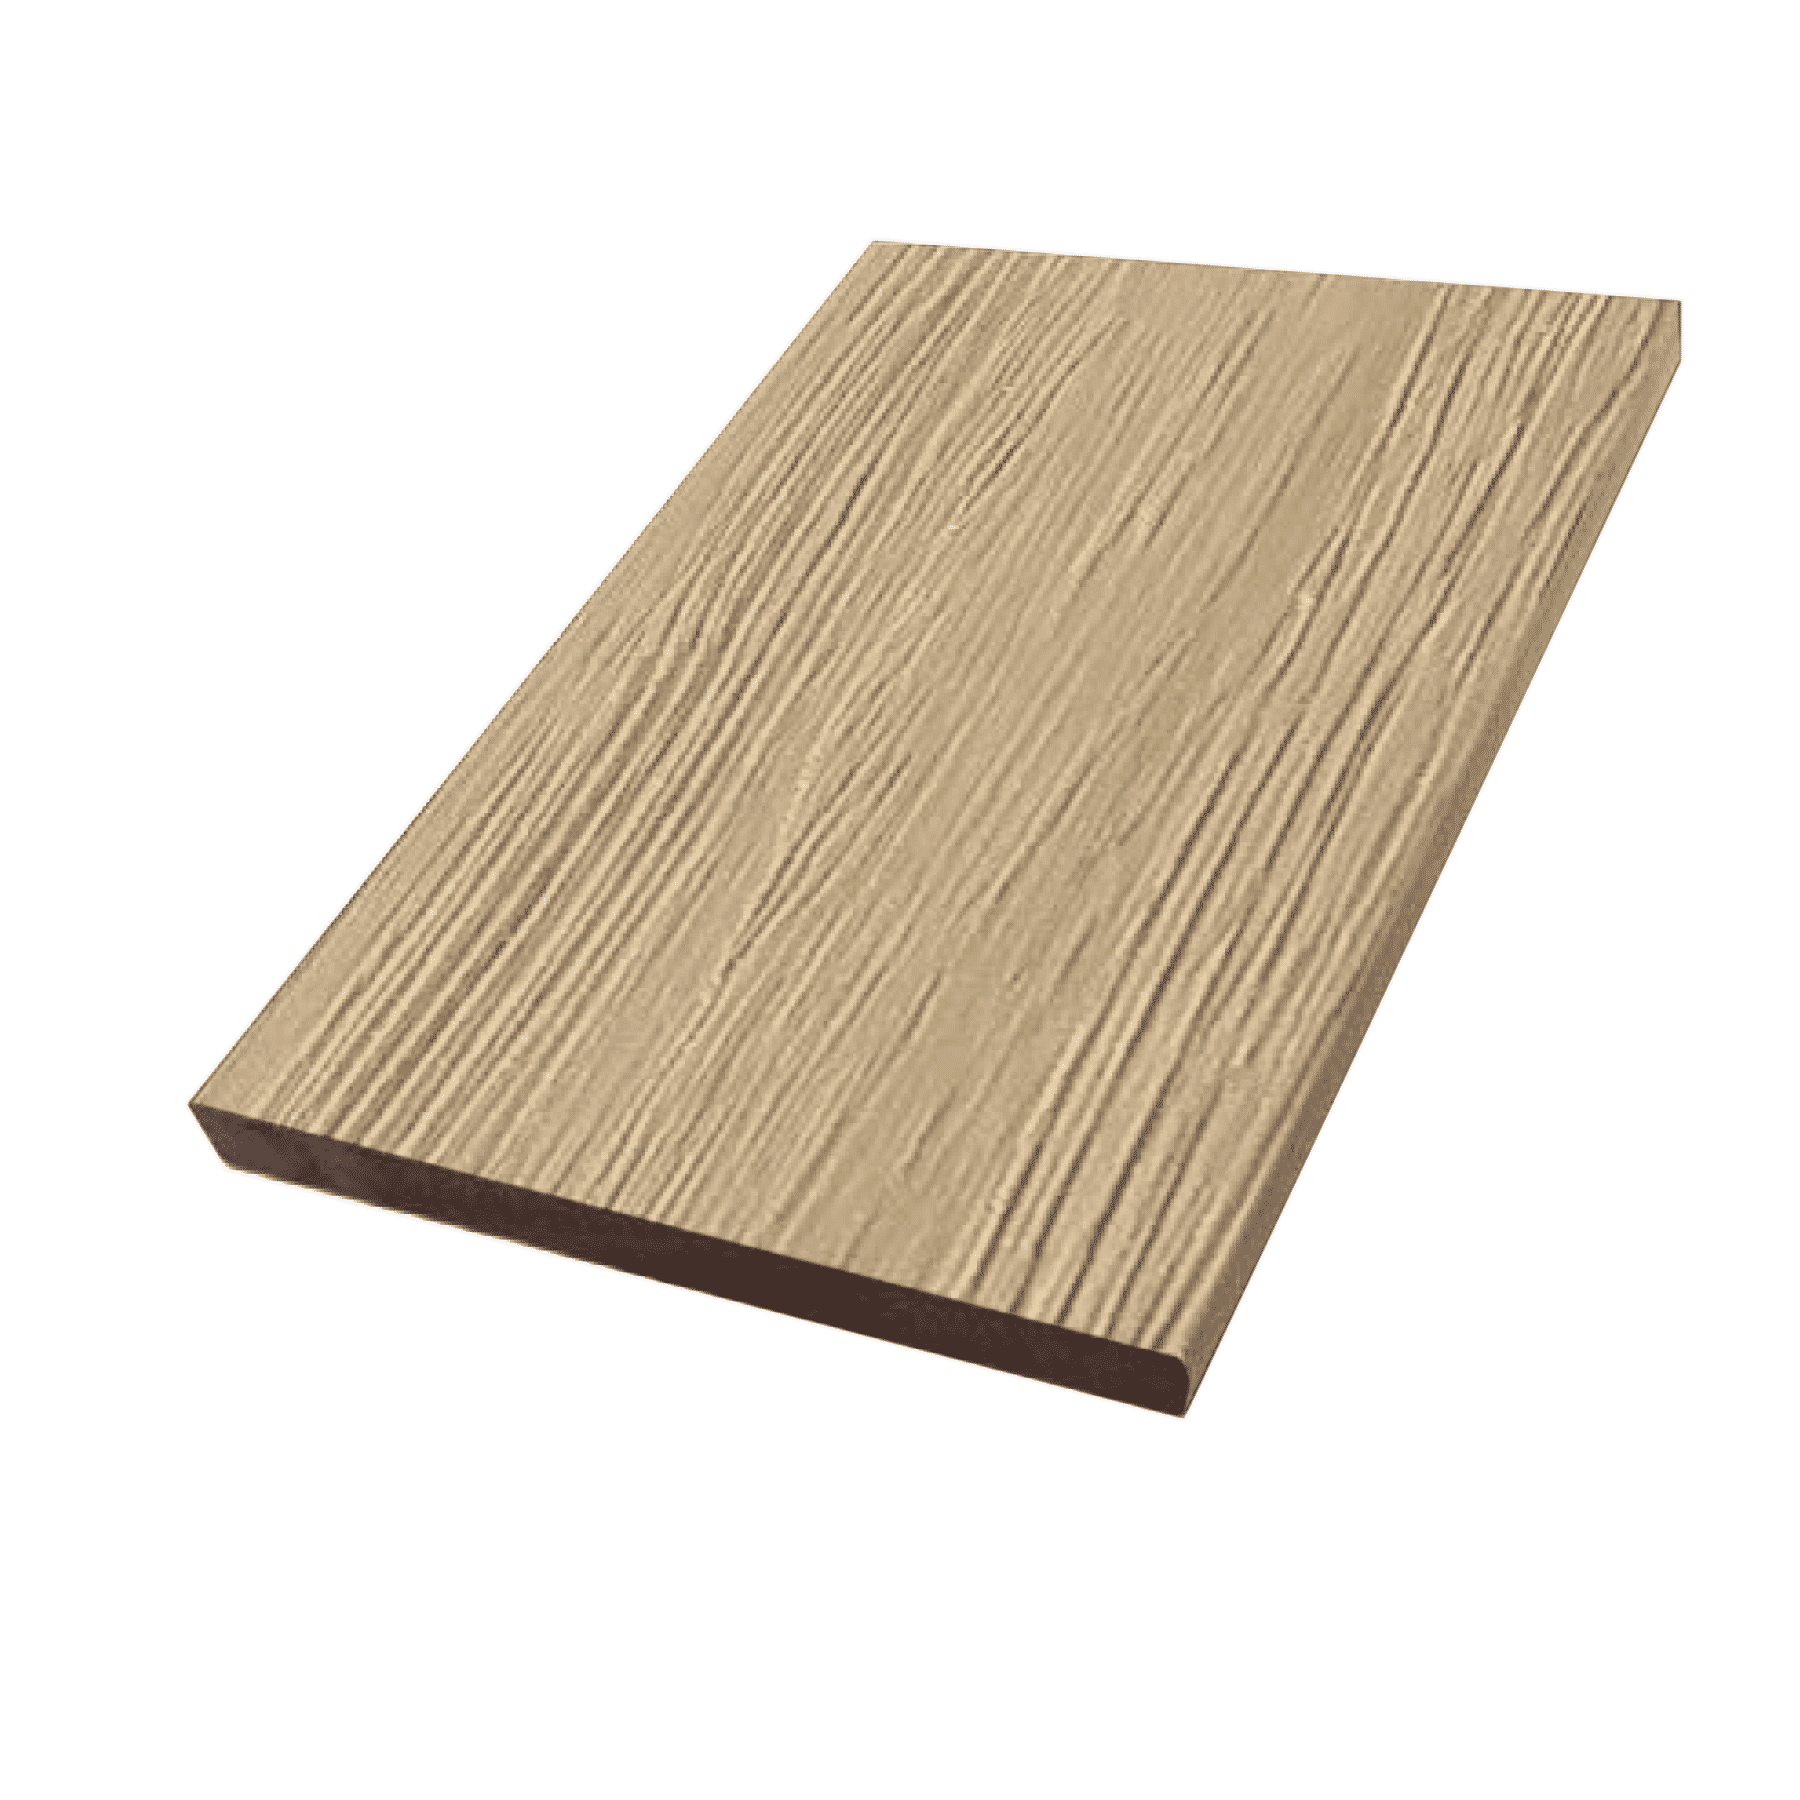 ISTSwiss-oak-C92_Stair-tread-Carved_wood_grain_CL1-Finish_3D